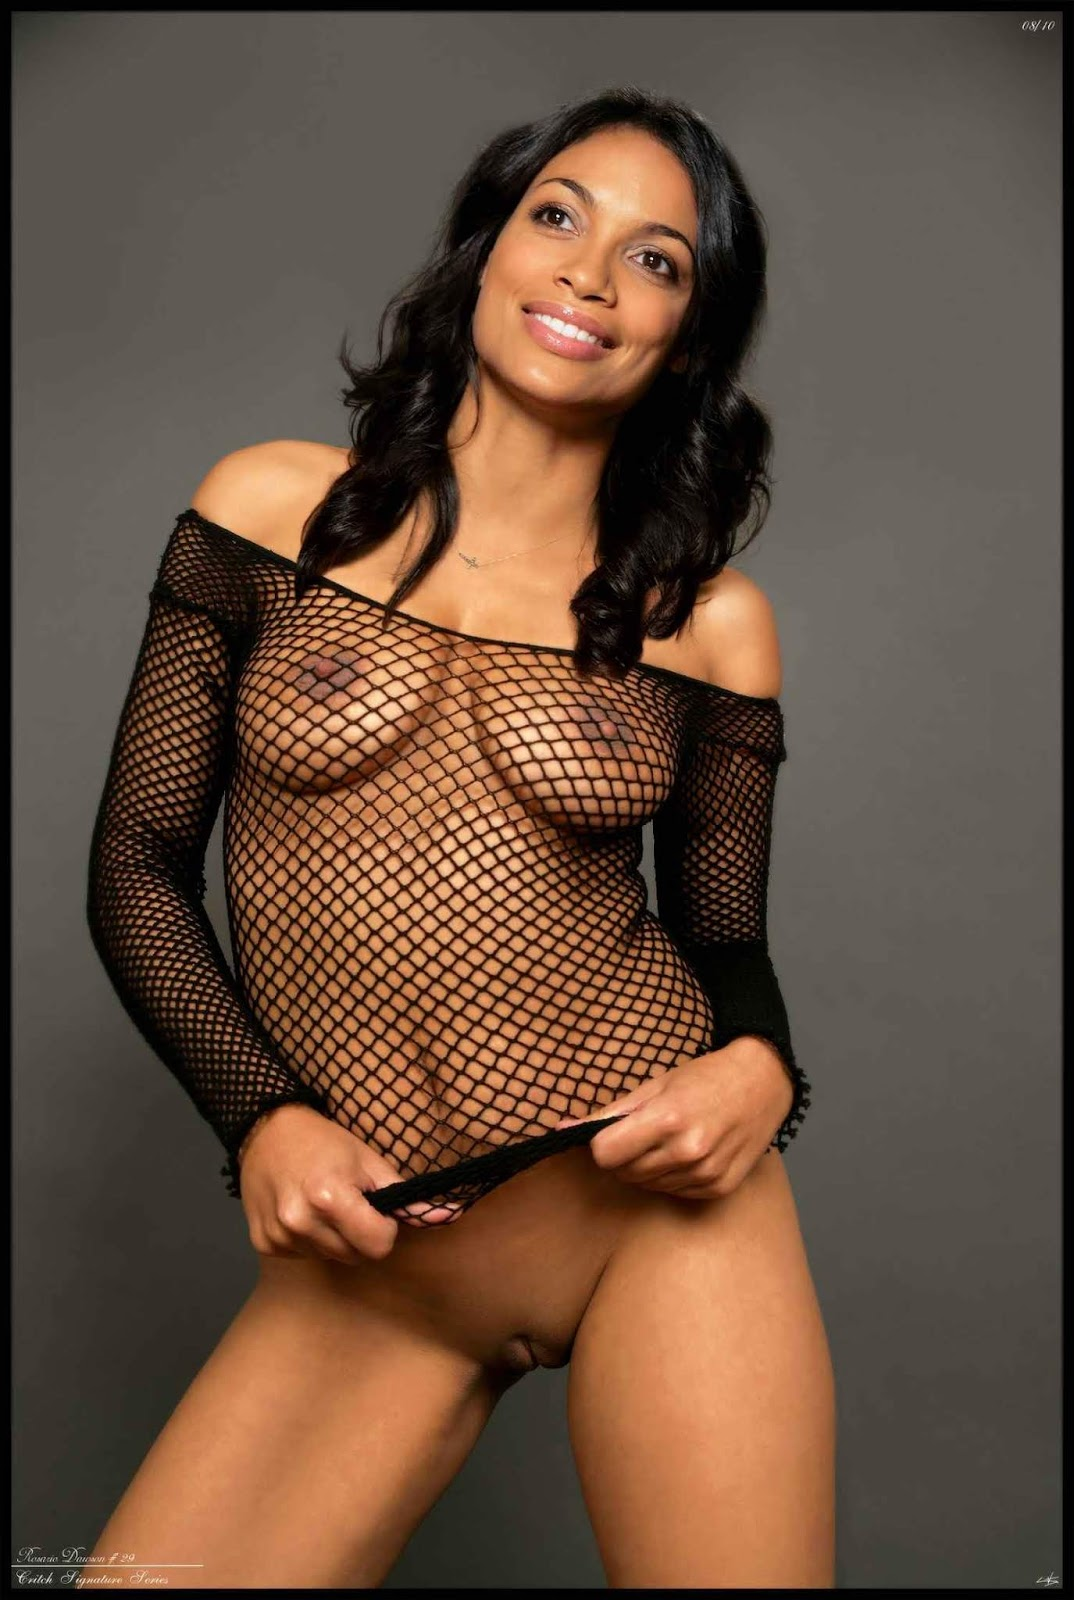 Rosario dawson naked images